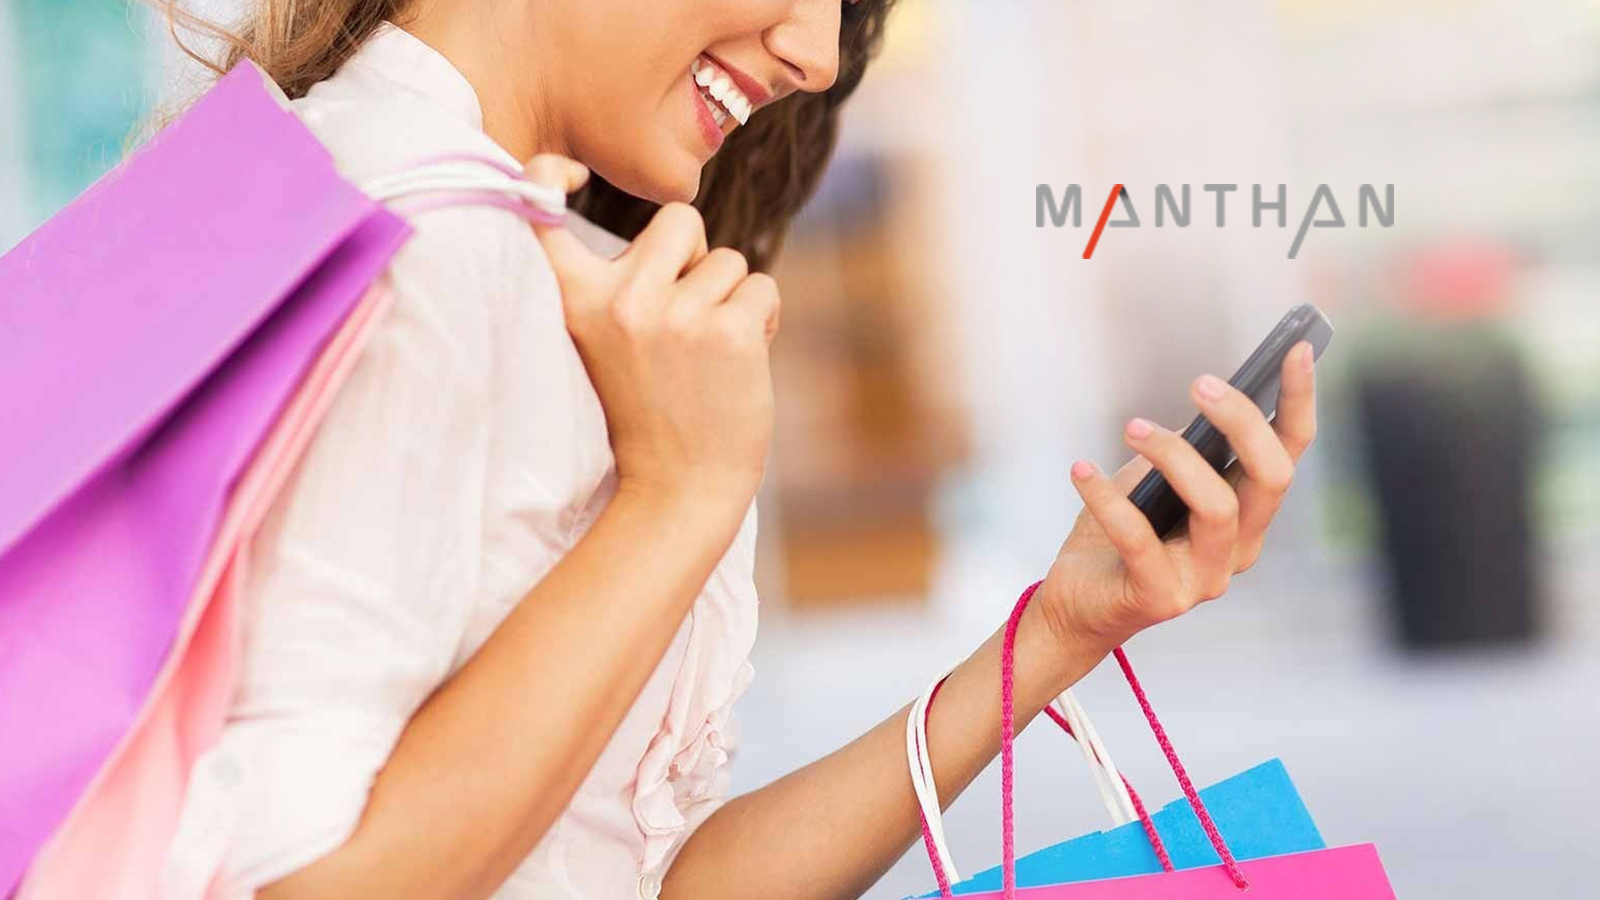 Manthan to Showcase AI-Powered Algorithmic Retailing at the